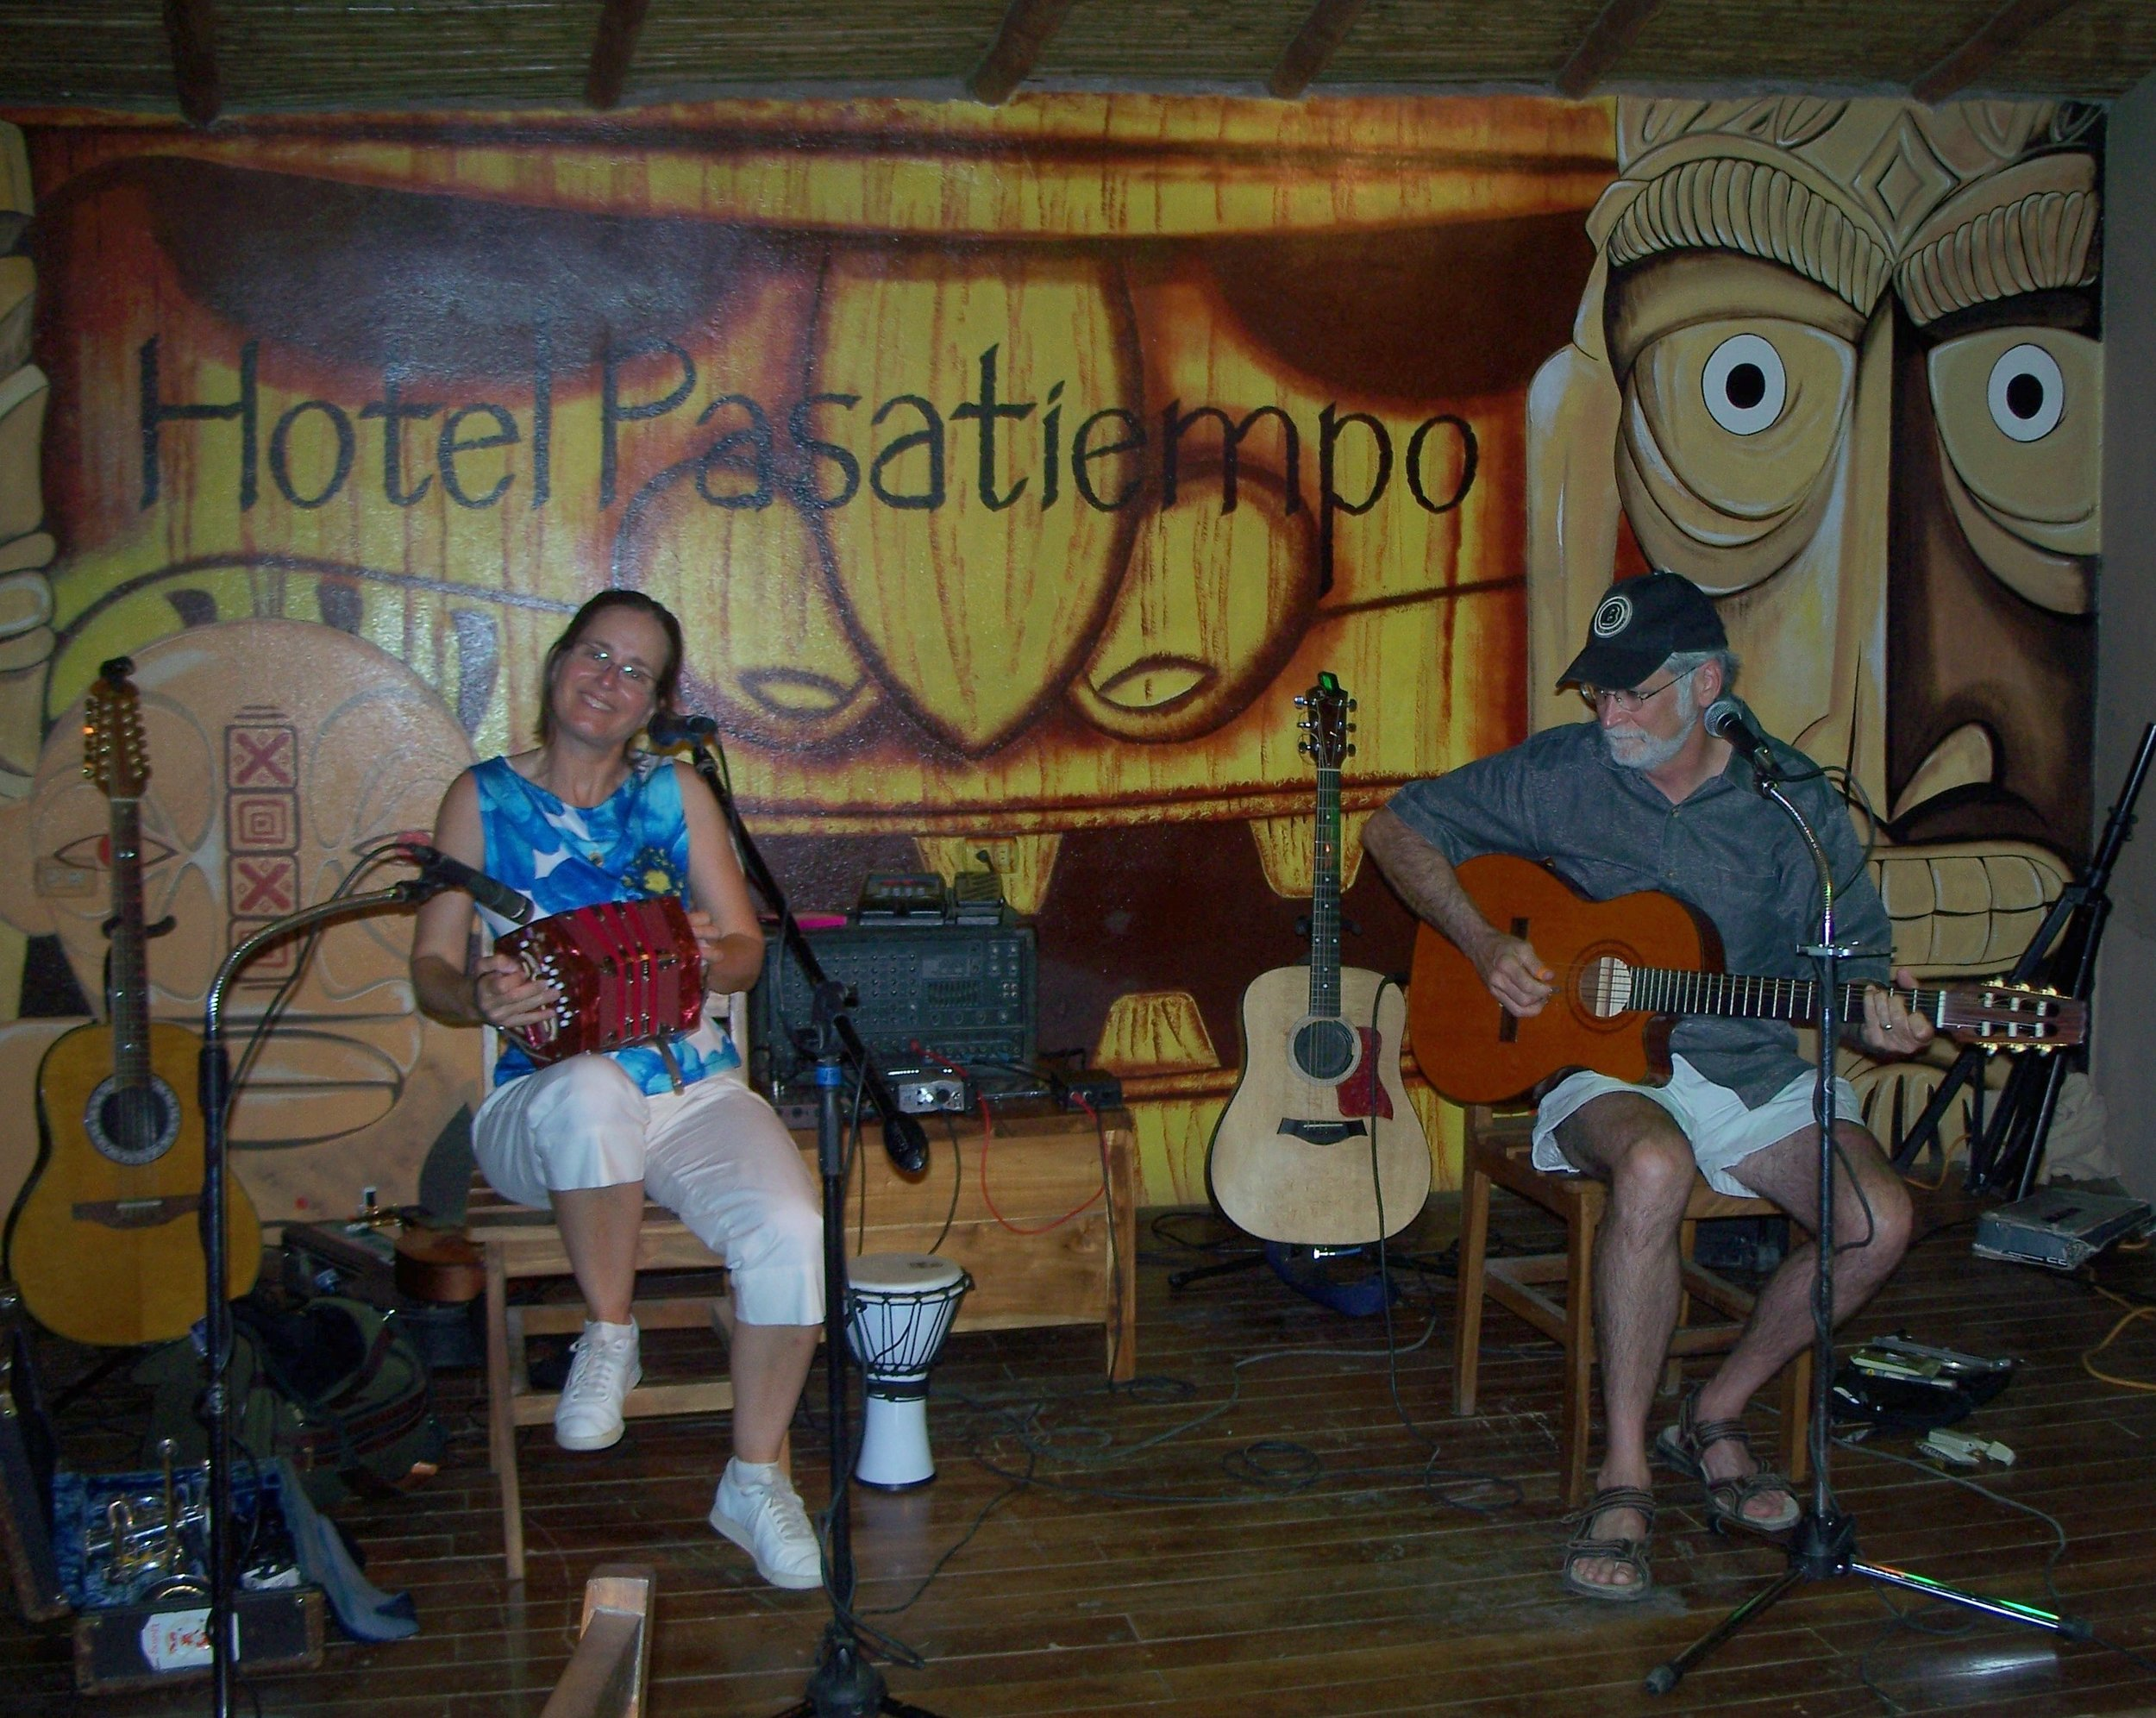 Show at Hotel Pasatiempo, Tamarindo, Costa Rica (April 2014)!